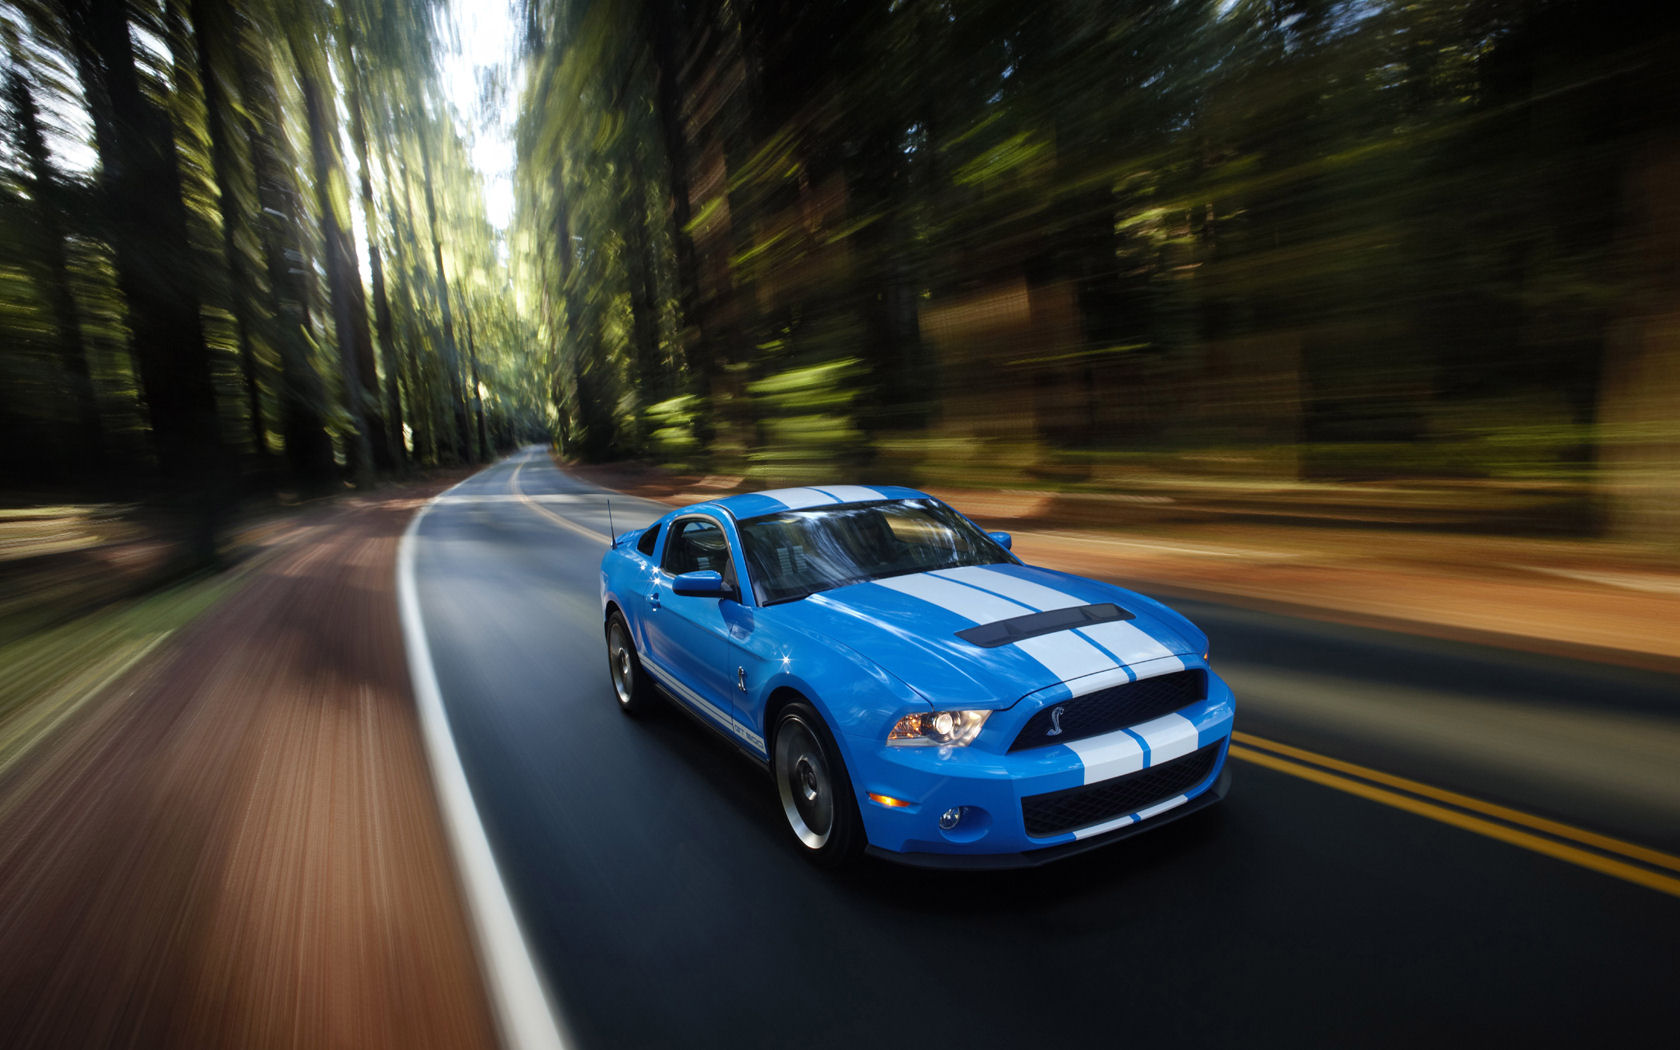 1680x1050 - Ford Convertible Wallpapers 36